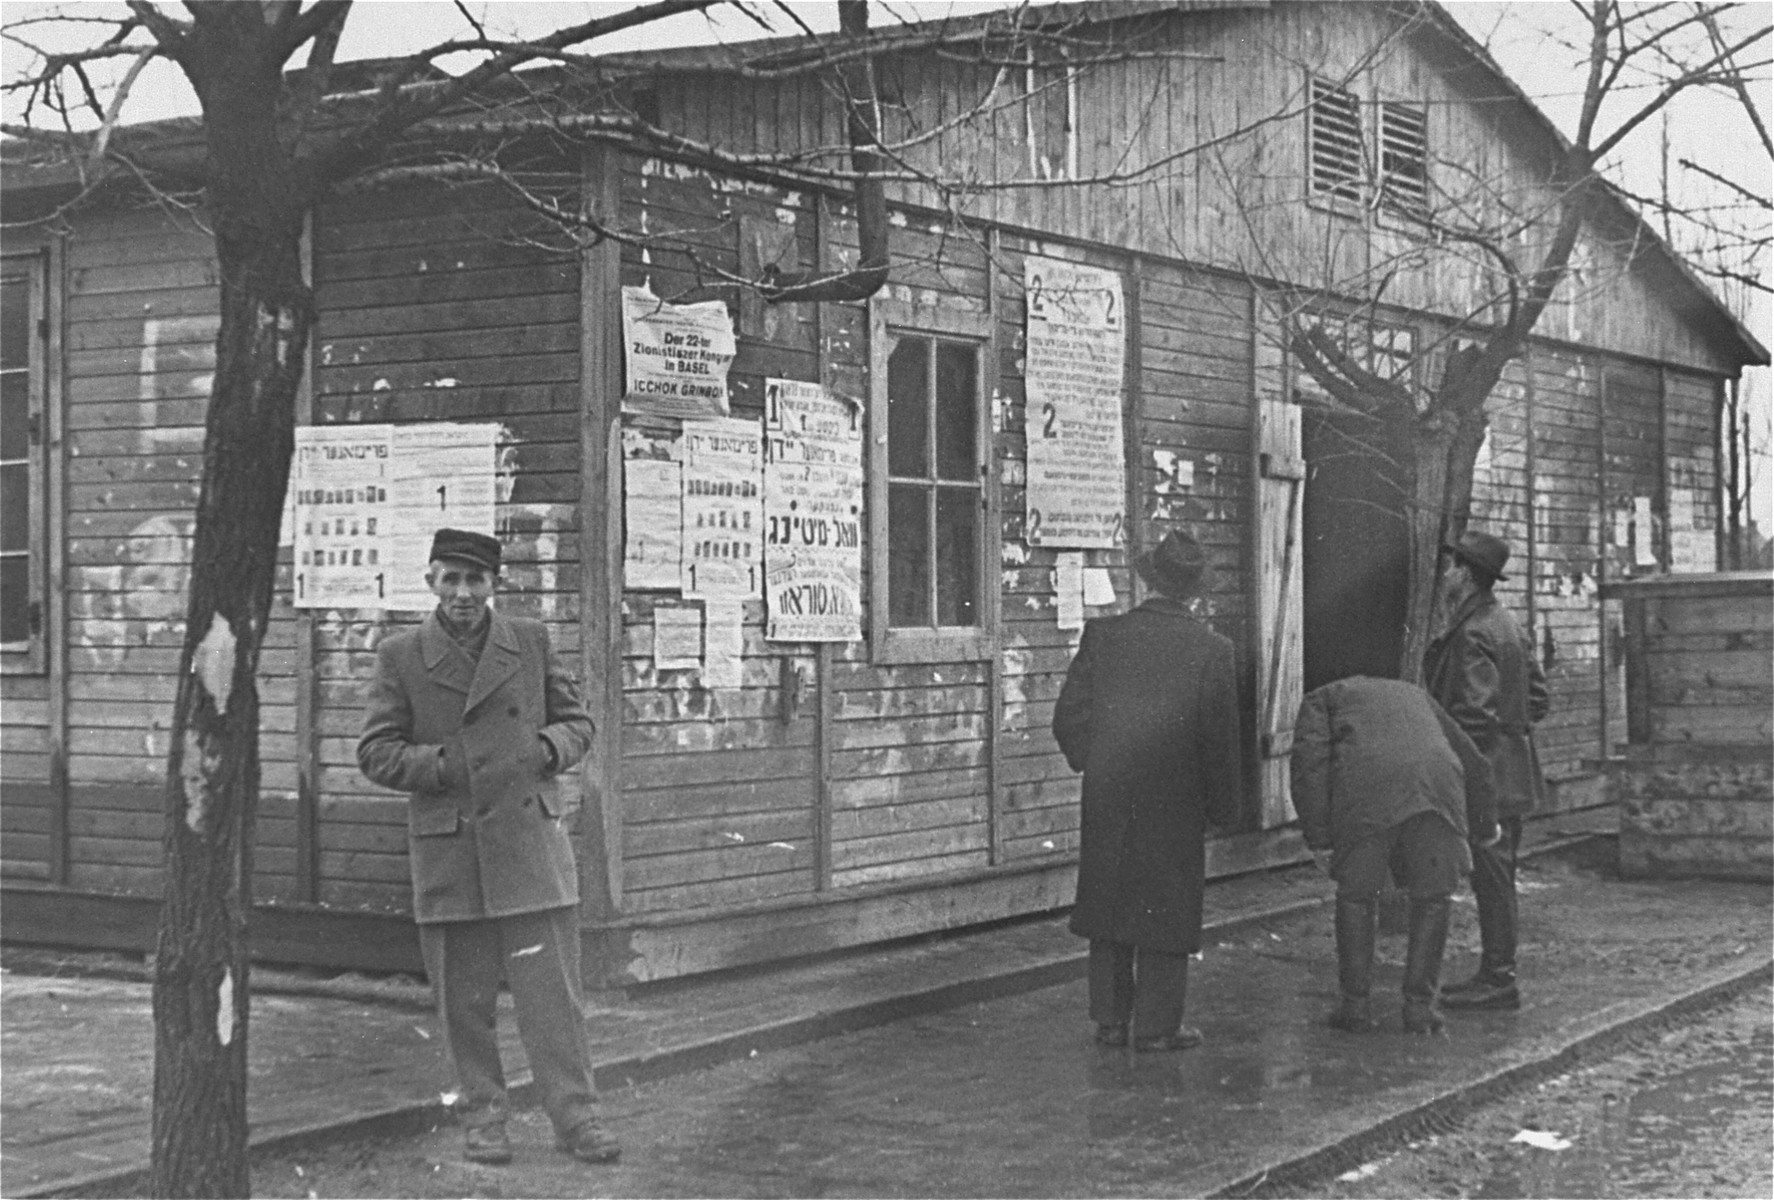 View of a wooden barracks on which numerous notices have been plastered at the Neu Freimann displaced persons camp.